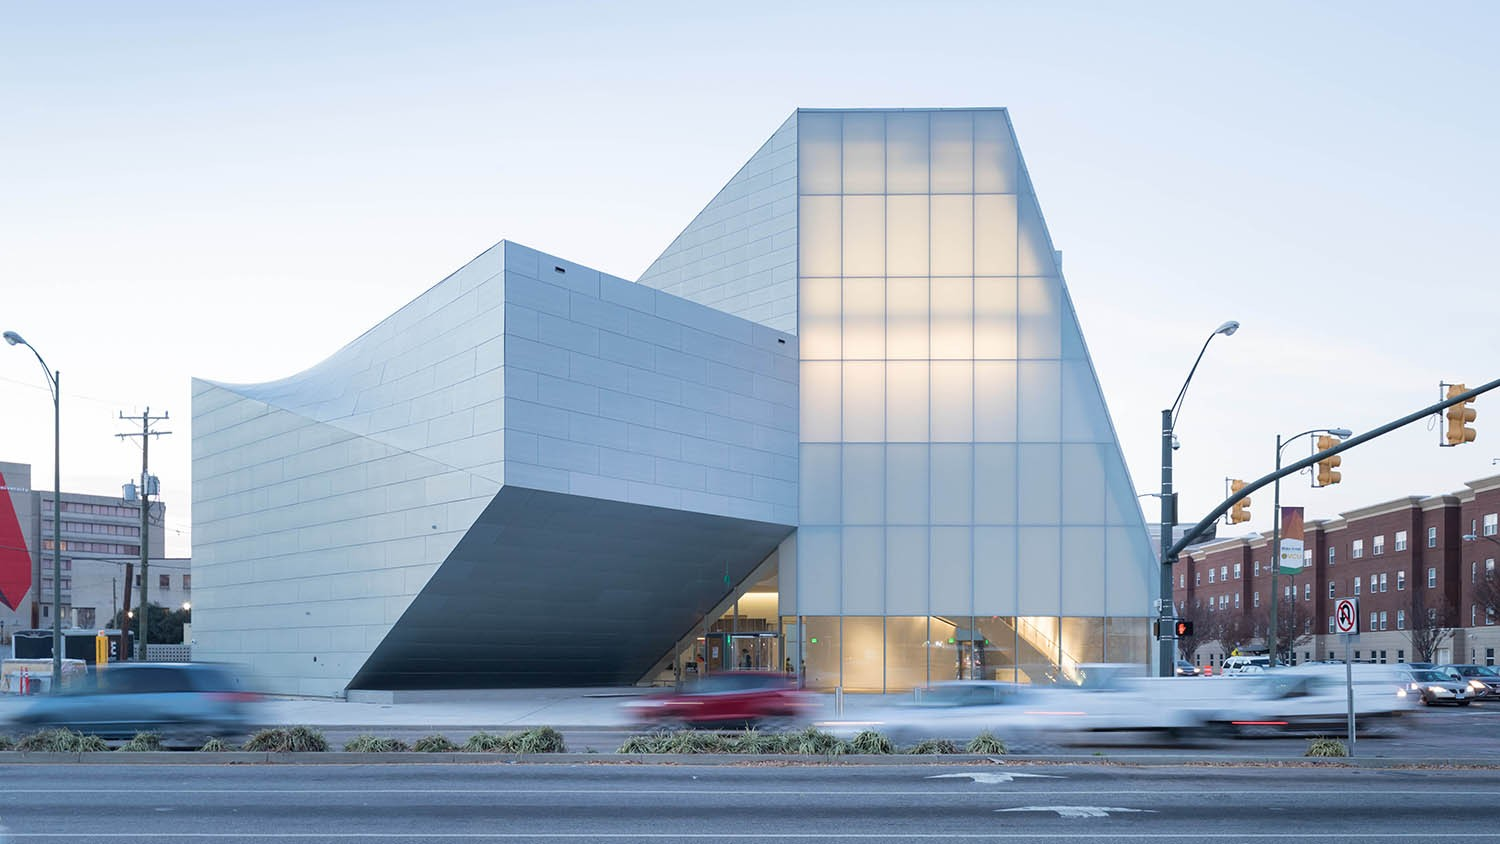 https://stevenholl.sfo2.digitaloceanspaces.com/uploads/projects/project-images/IwanBaan_ICA_VCU17-12SHA4280_WH.jpg